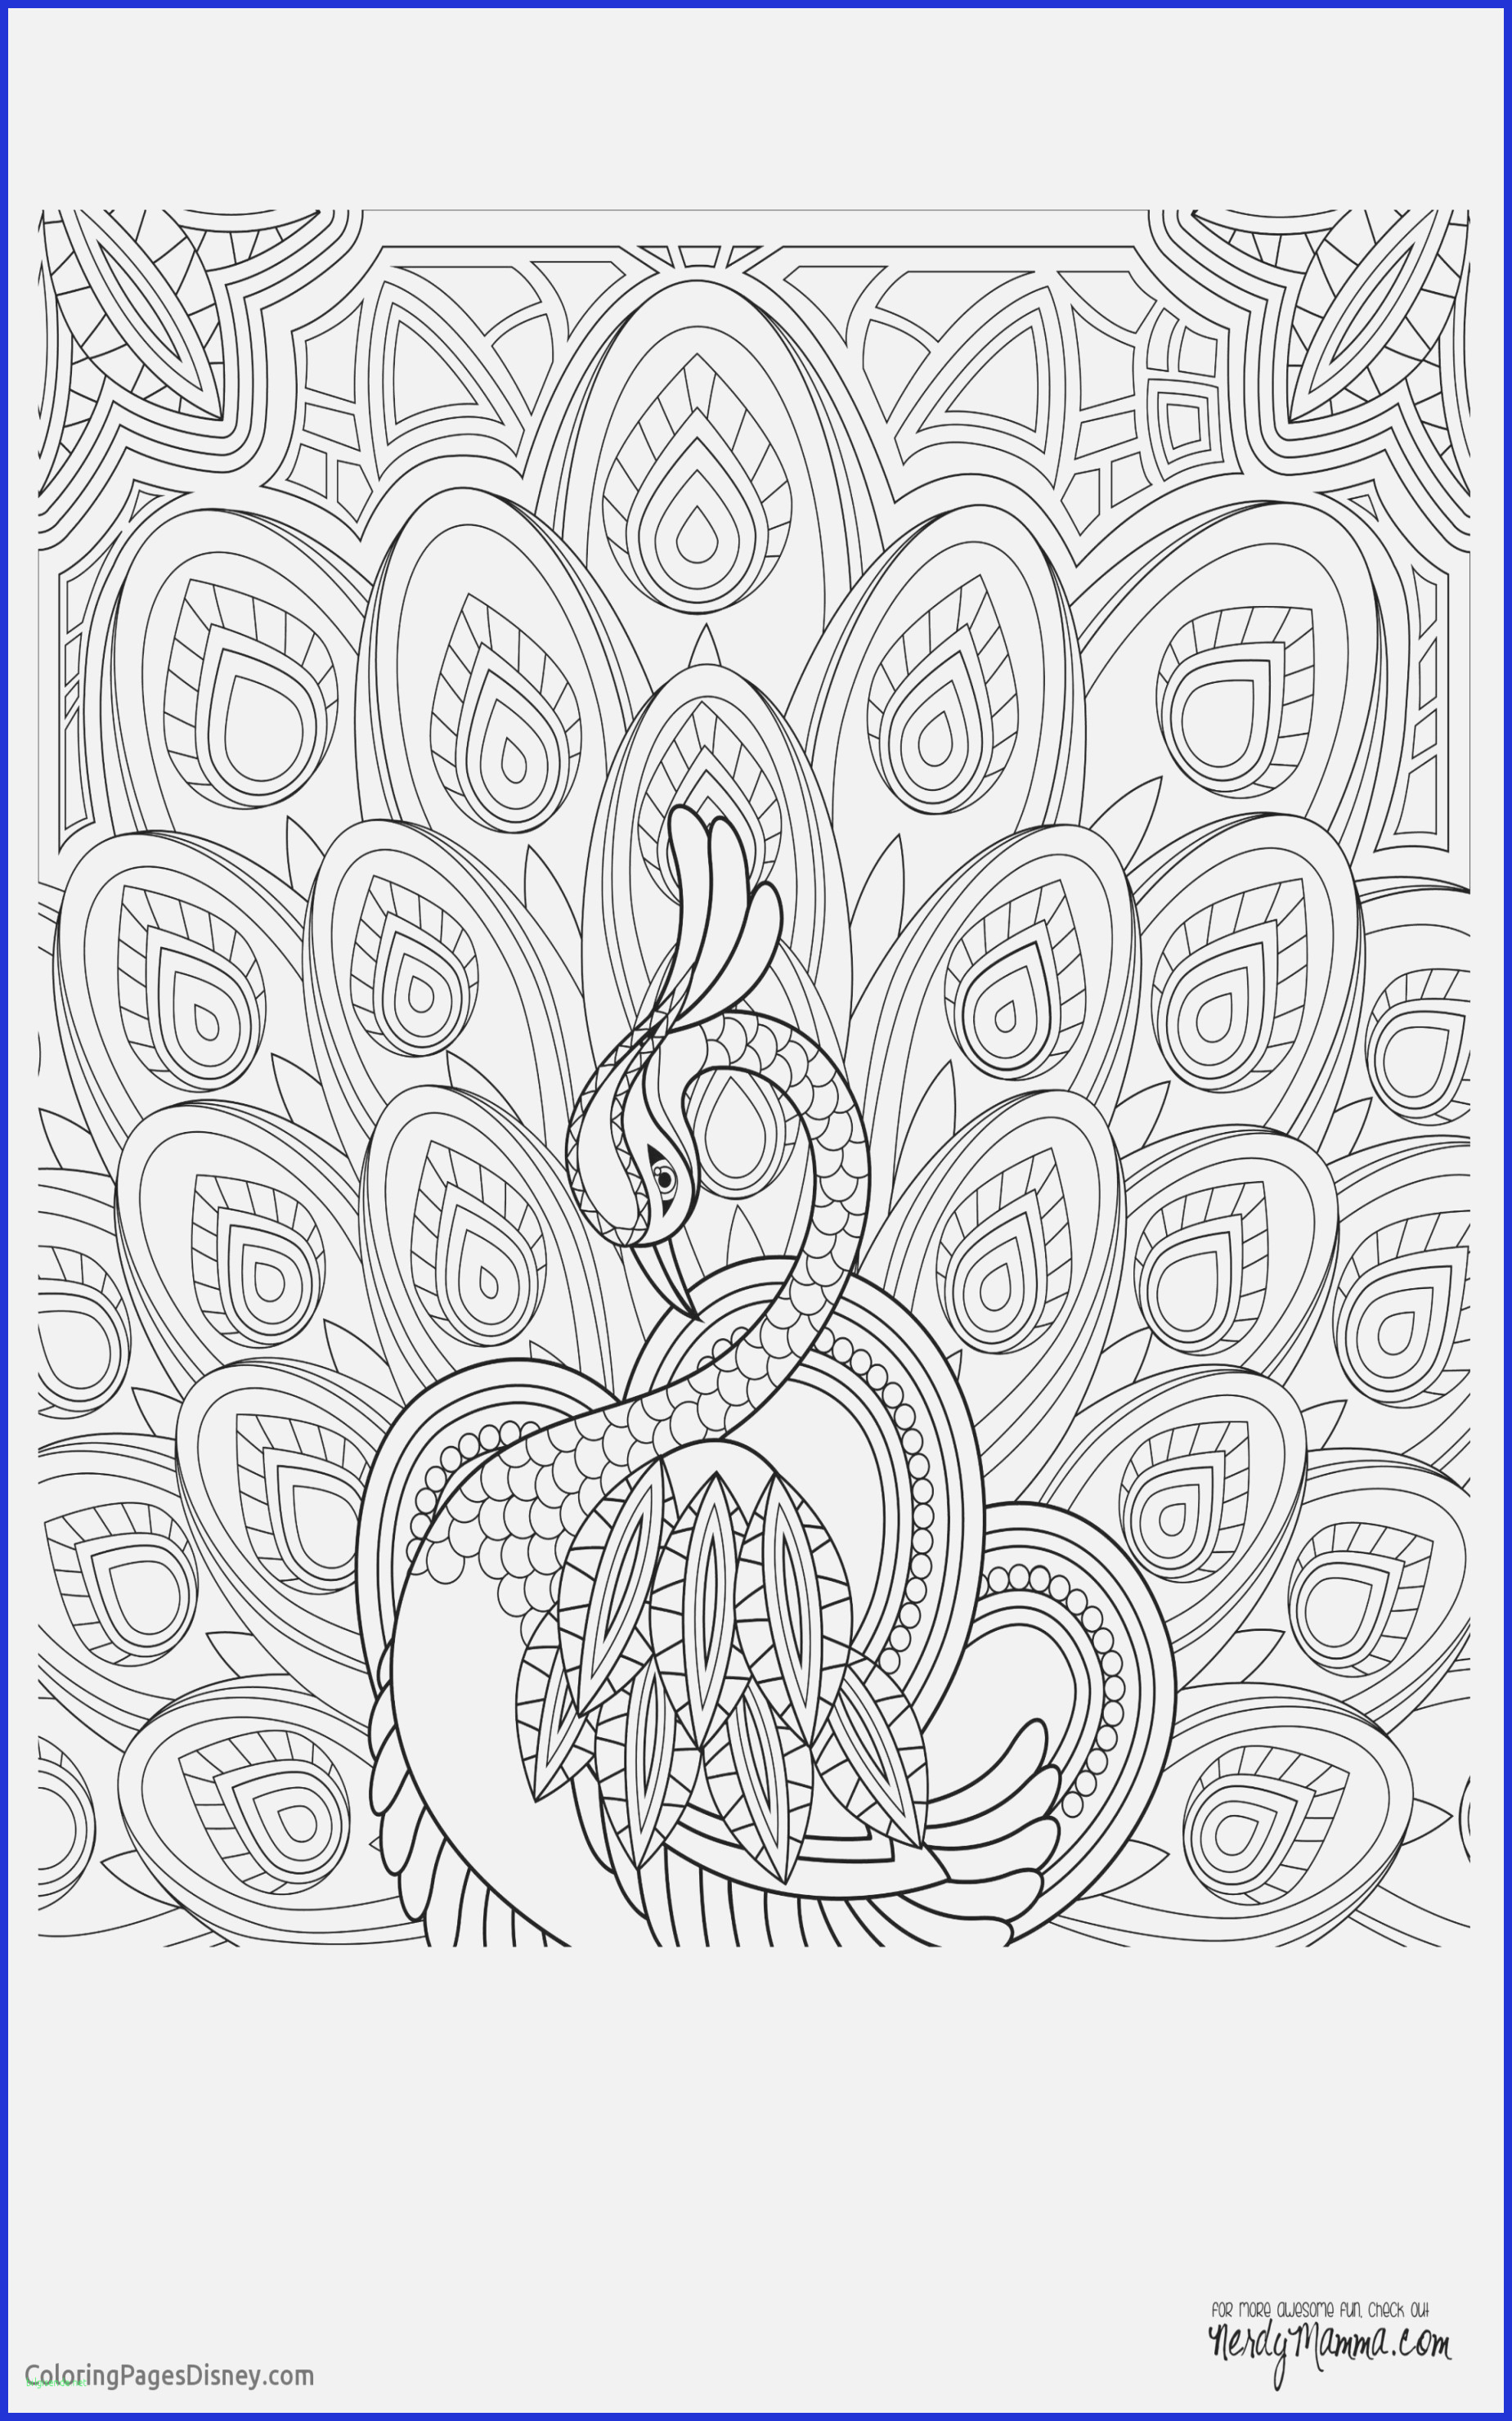 free disney halloween coloring pages Collection-Captivating Disney Coloring Poster Like 16 Eeyore Halloween Coloring Pages 11-e